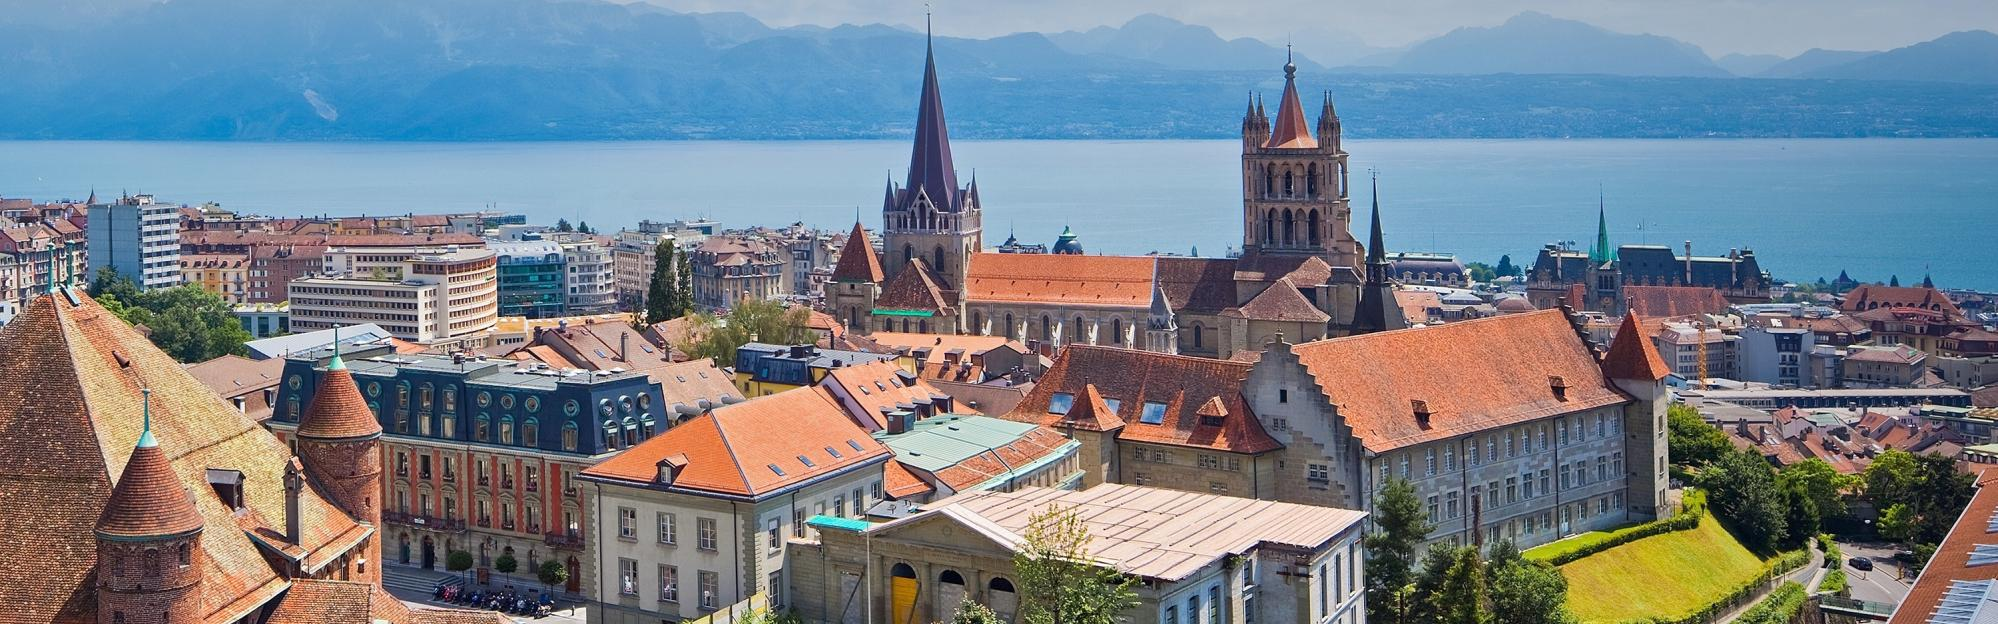 Lausanne cathedral and historic city